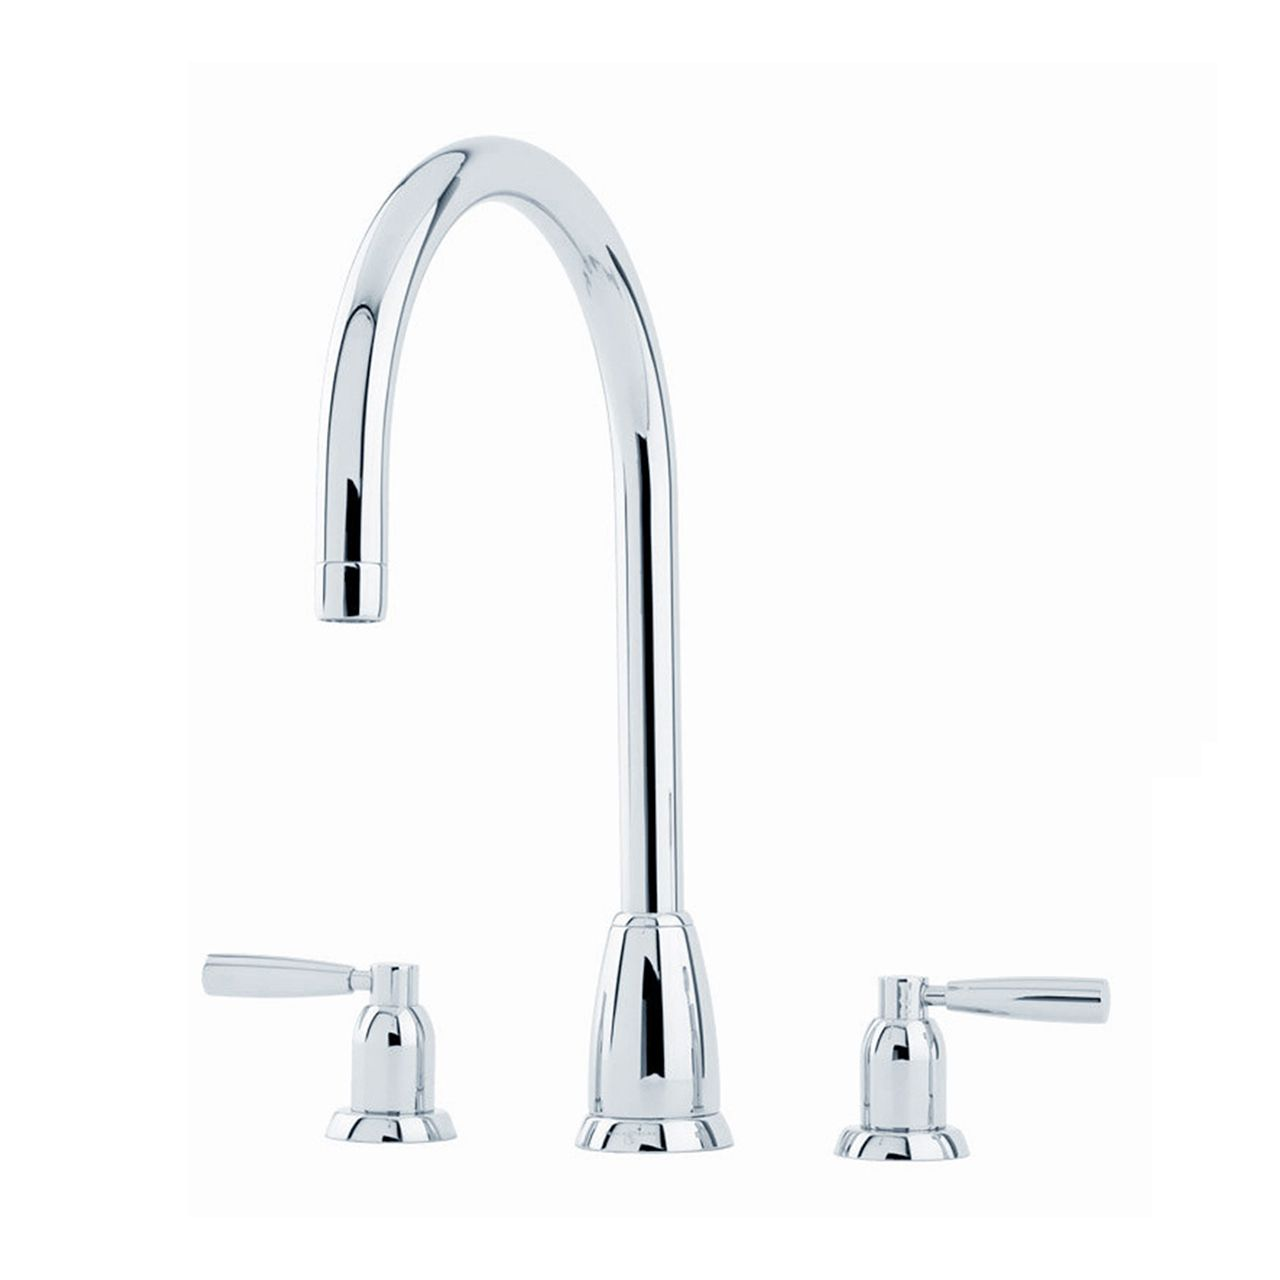 Perrin and Rowe CALLISTO 4886 Kitchen Tap - Sinks-Taps.com